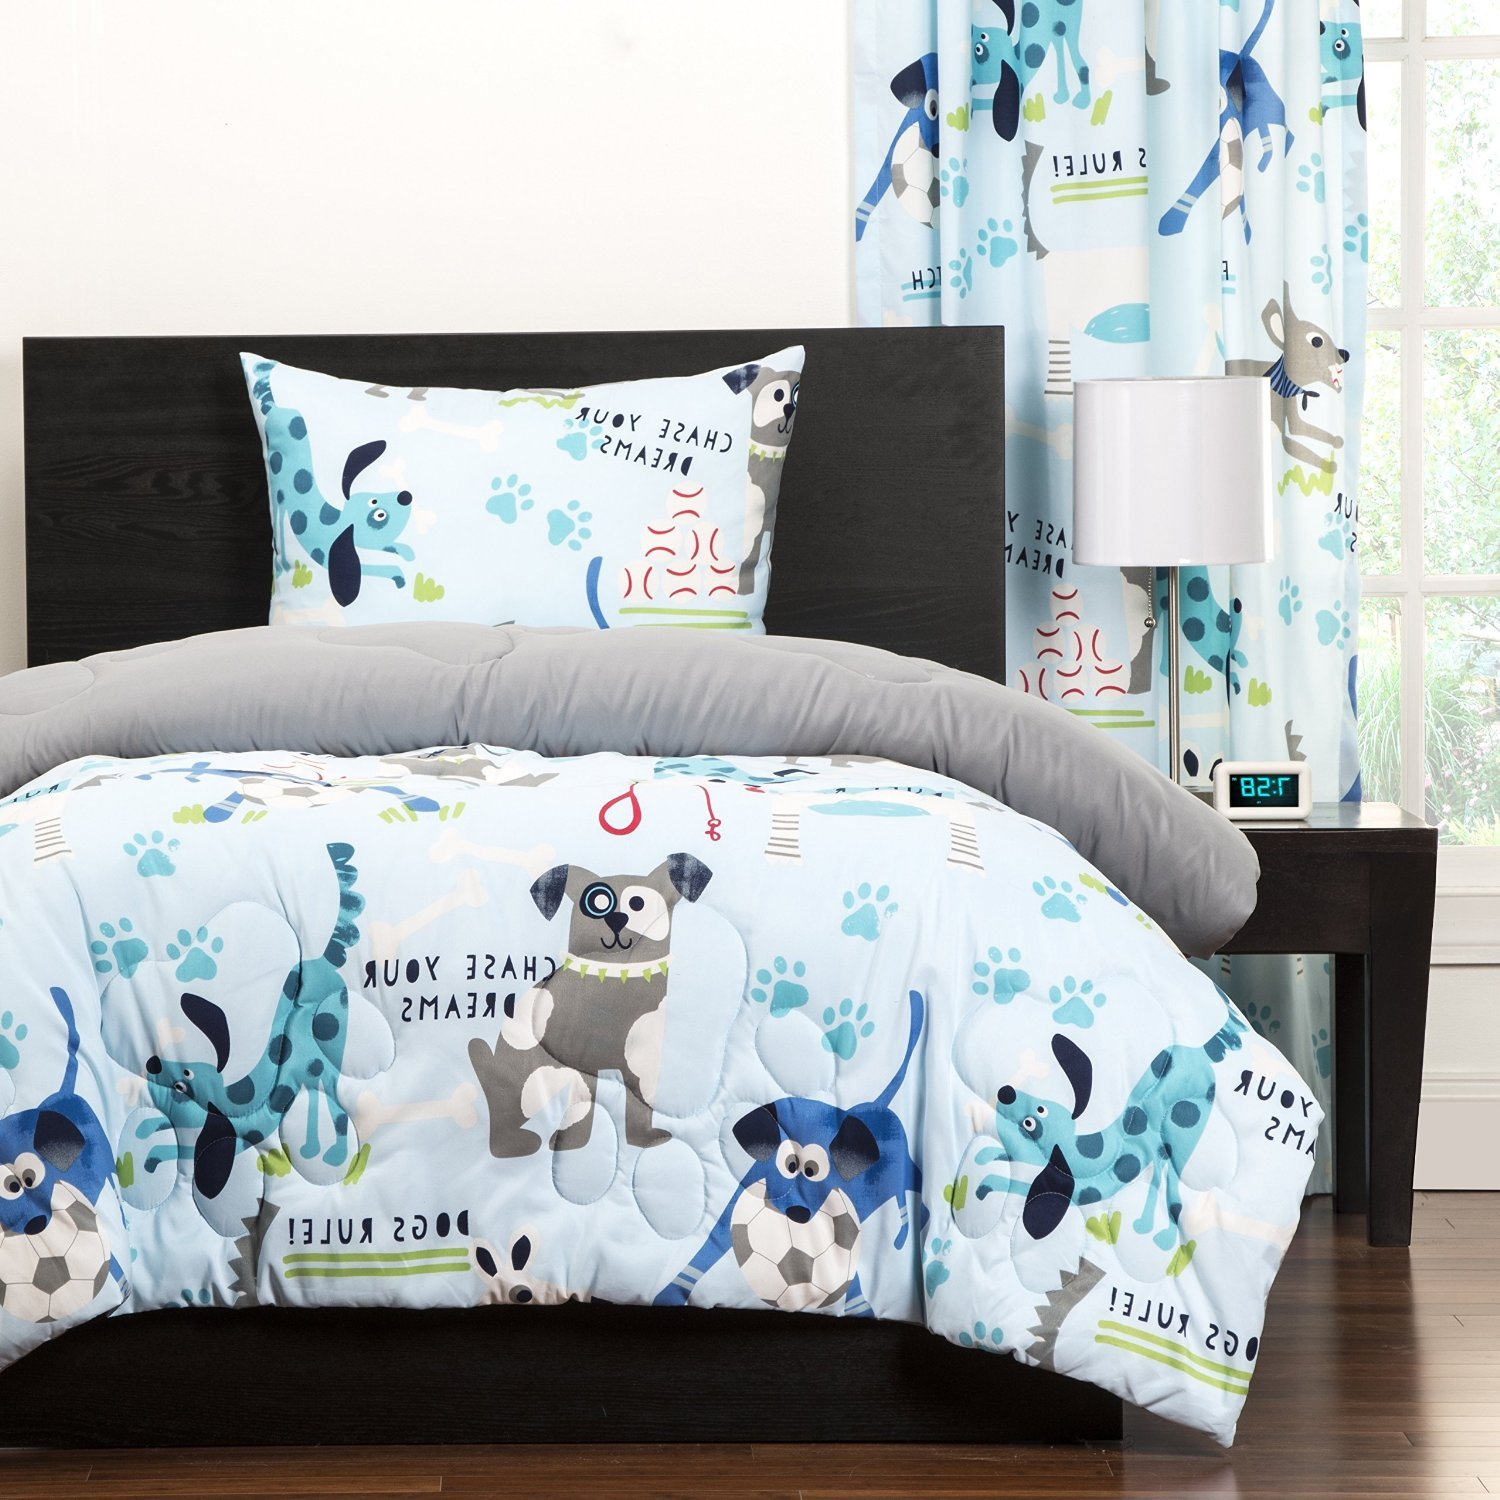 3 Piece Kids Puppies Dogs Comforter Full Queen, Cute Adorable Childrens Playful Bedding , Puppy Love Little Doggies Blue Teal White